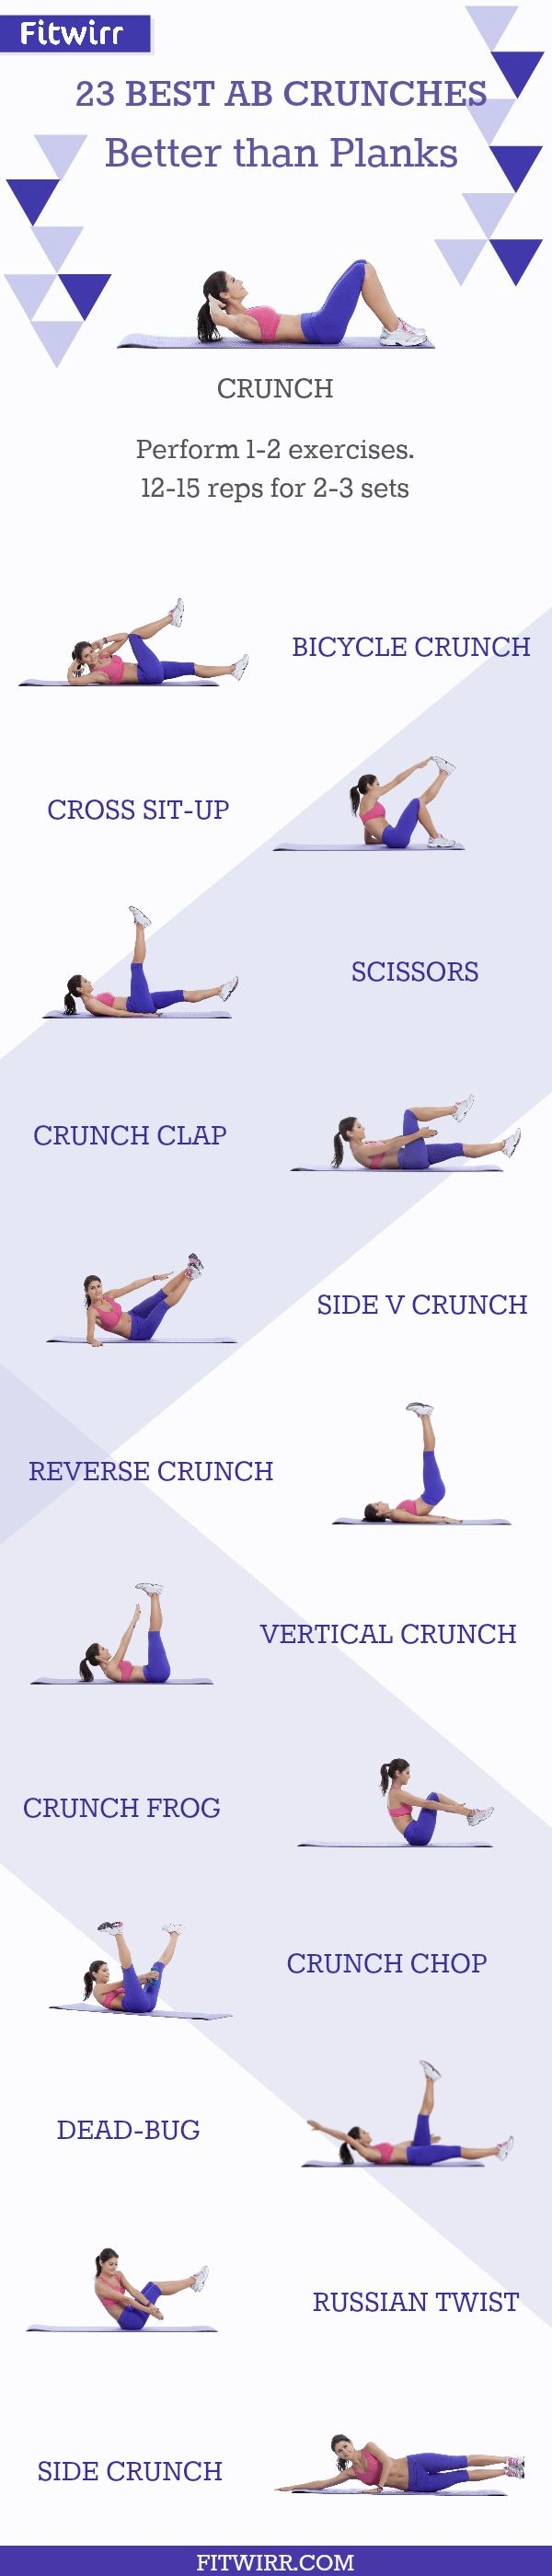 #Crunches that work your #abs harder than #plank